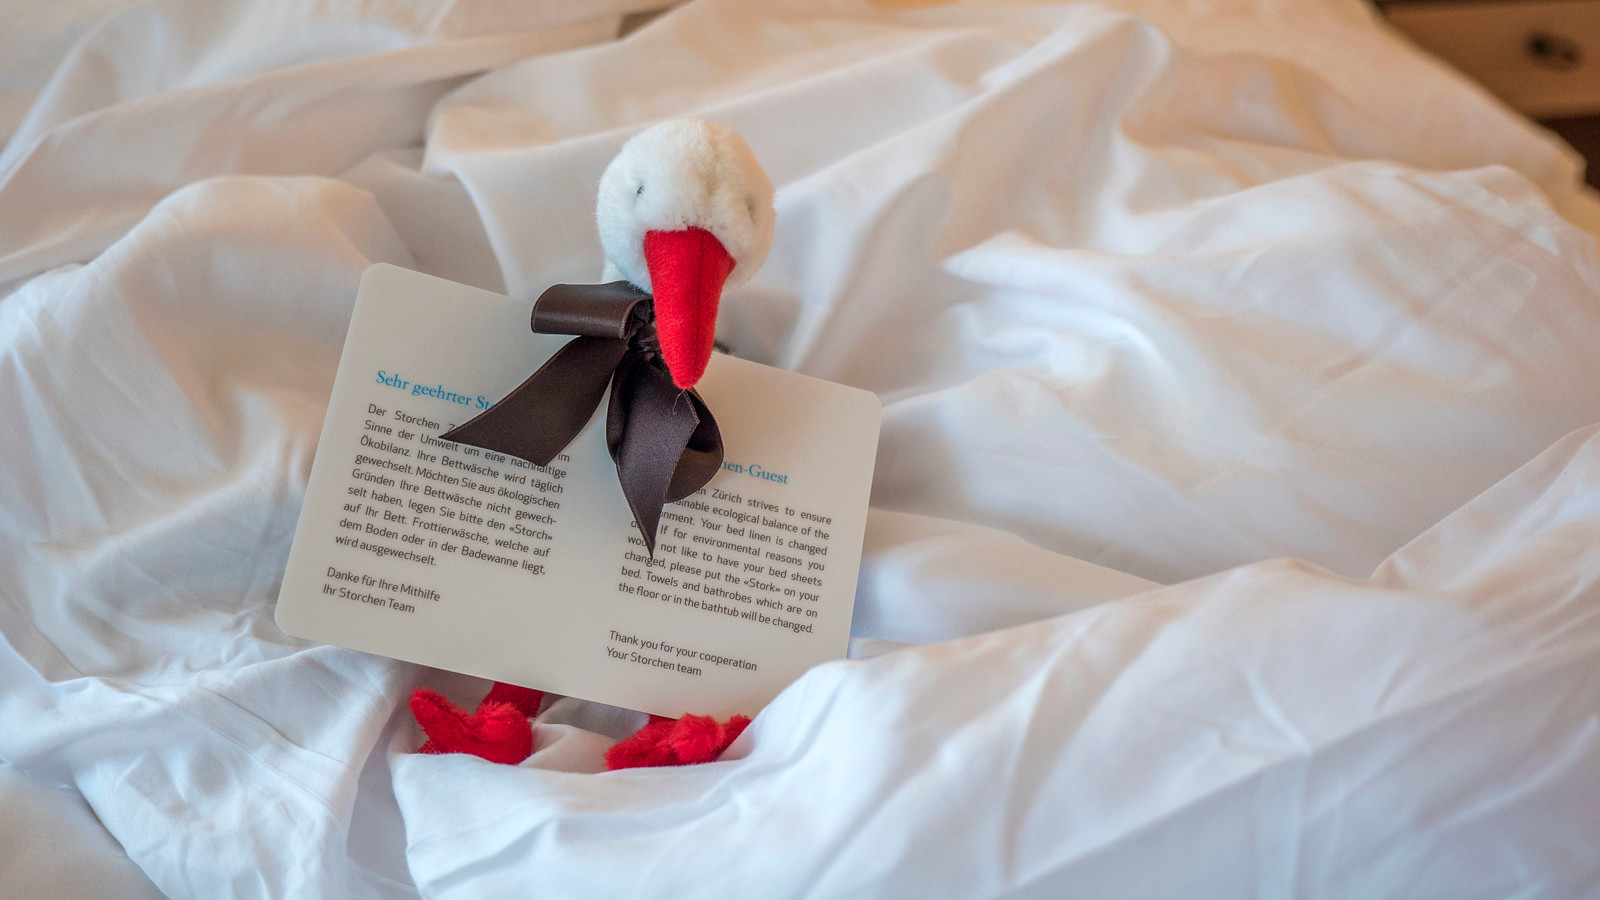 Stork toy at Hotel Storchen Zurich, Switzerland.